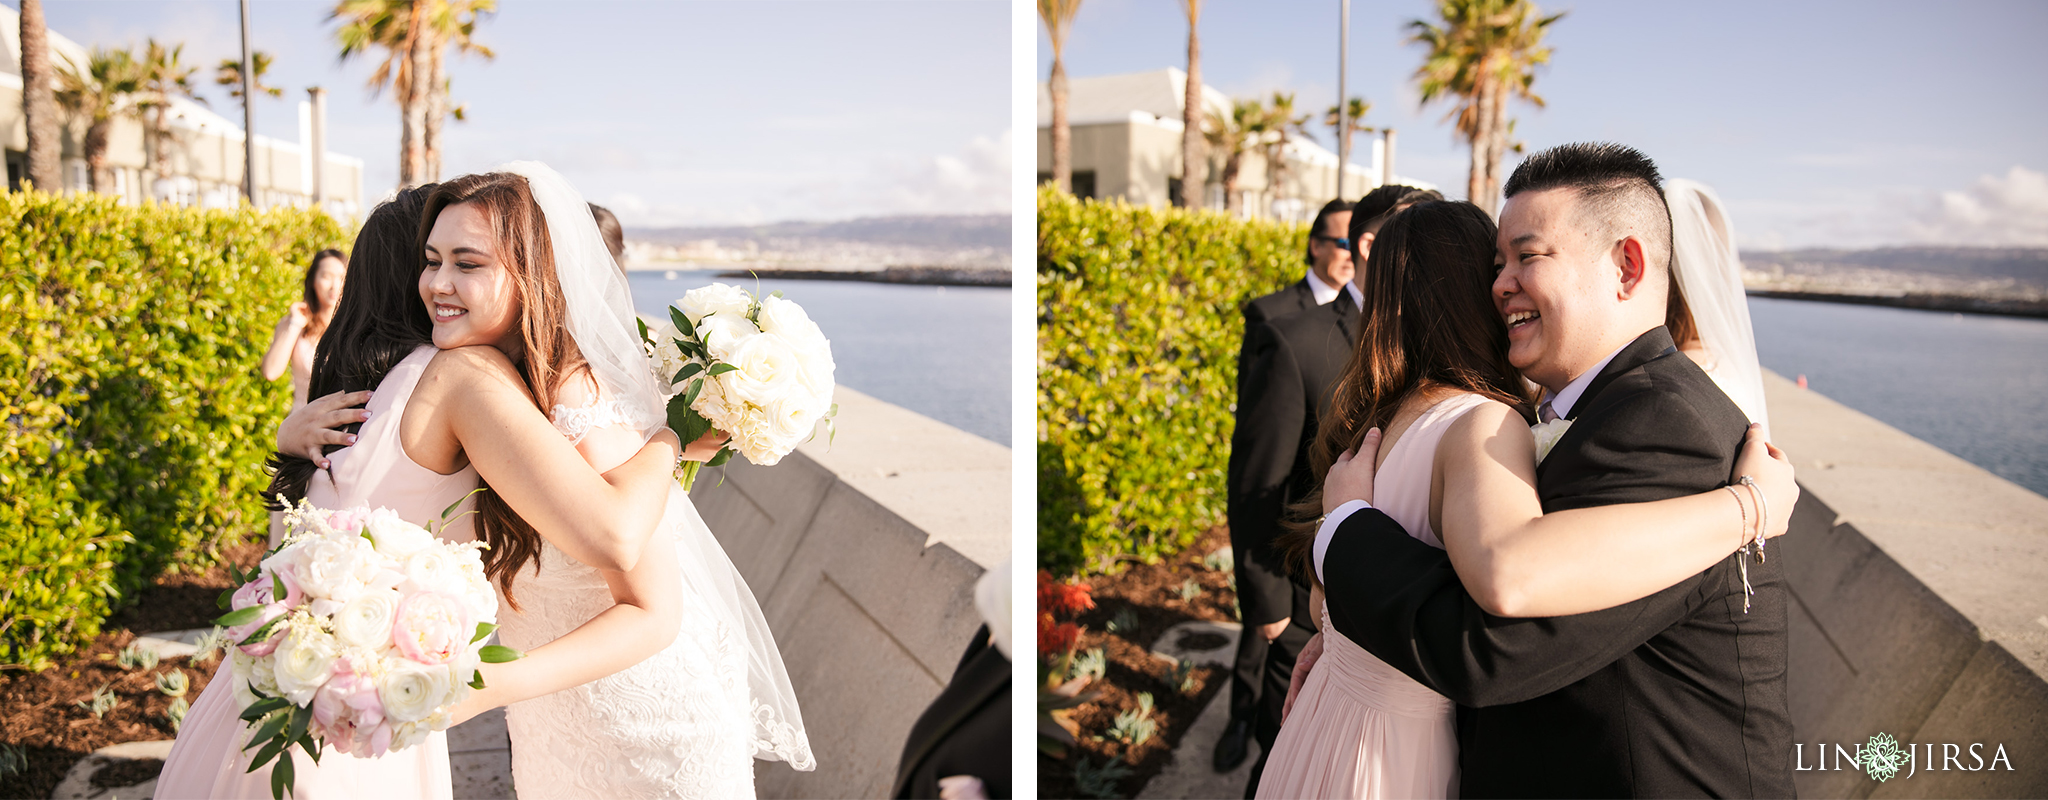 19 The Portofino Hotel Redondo Beach Wedding Photography